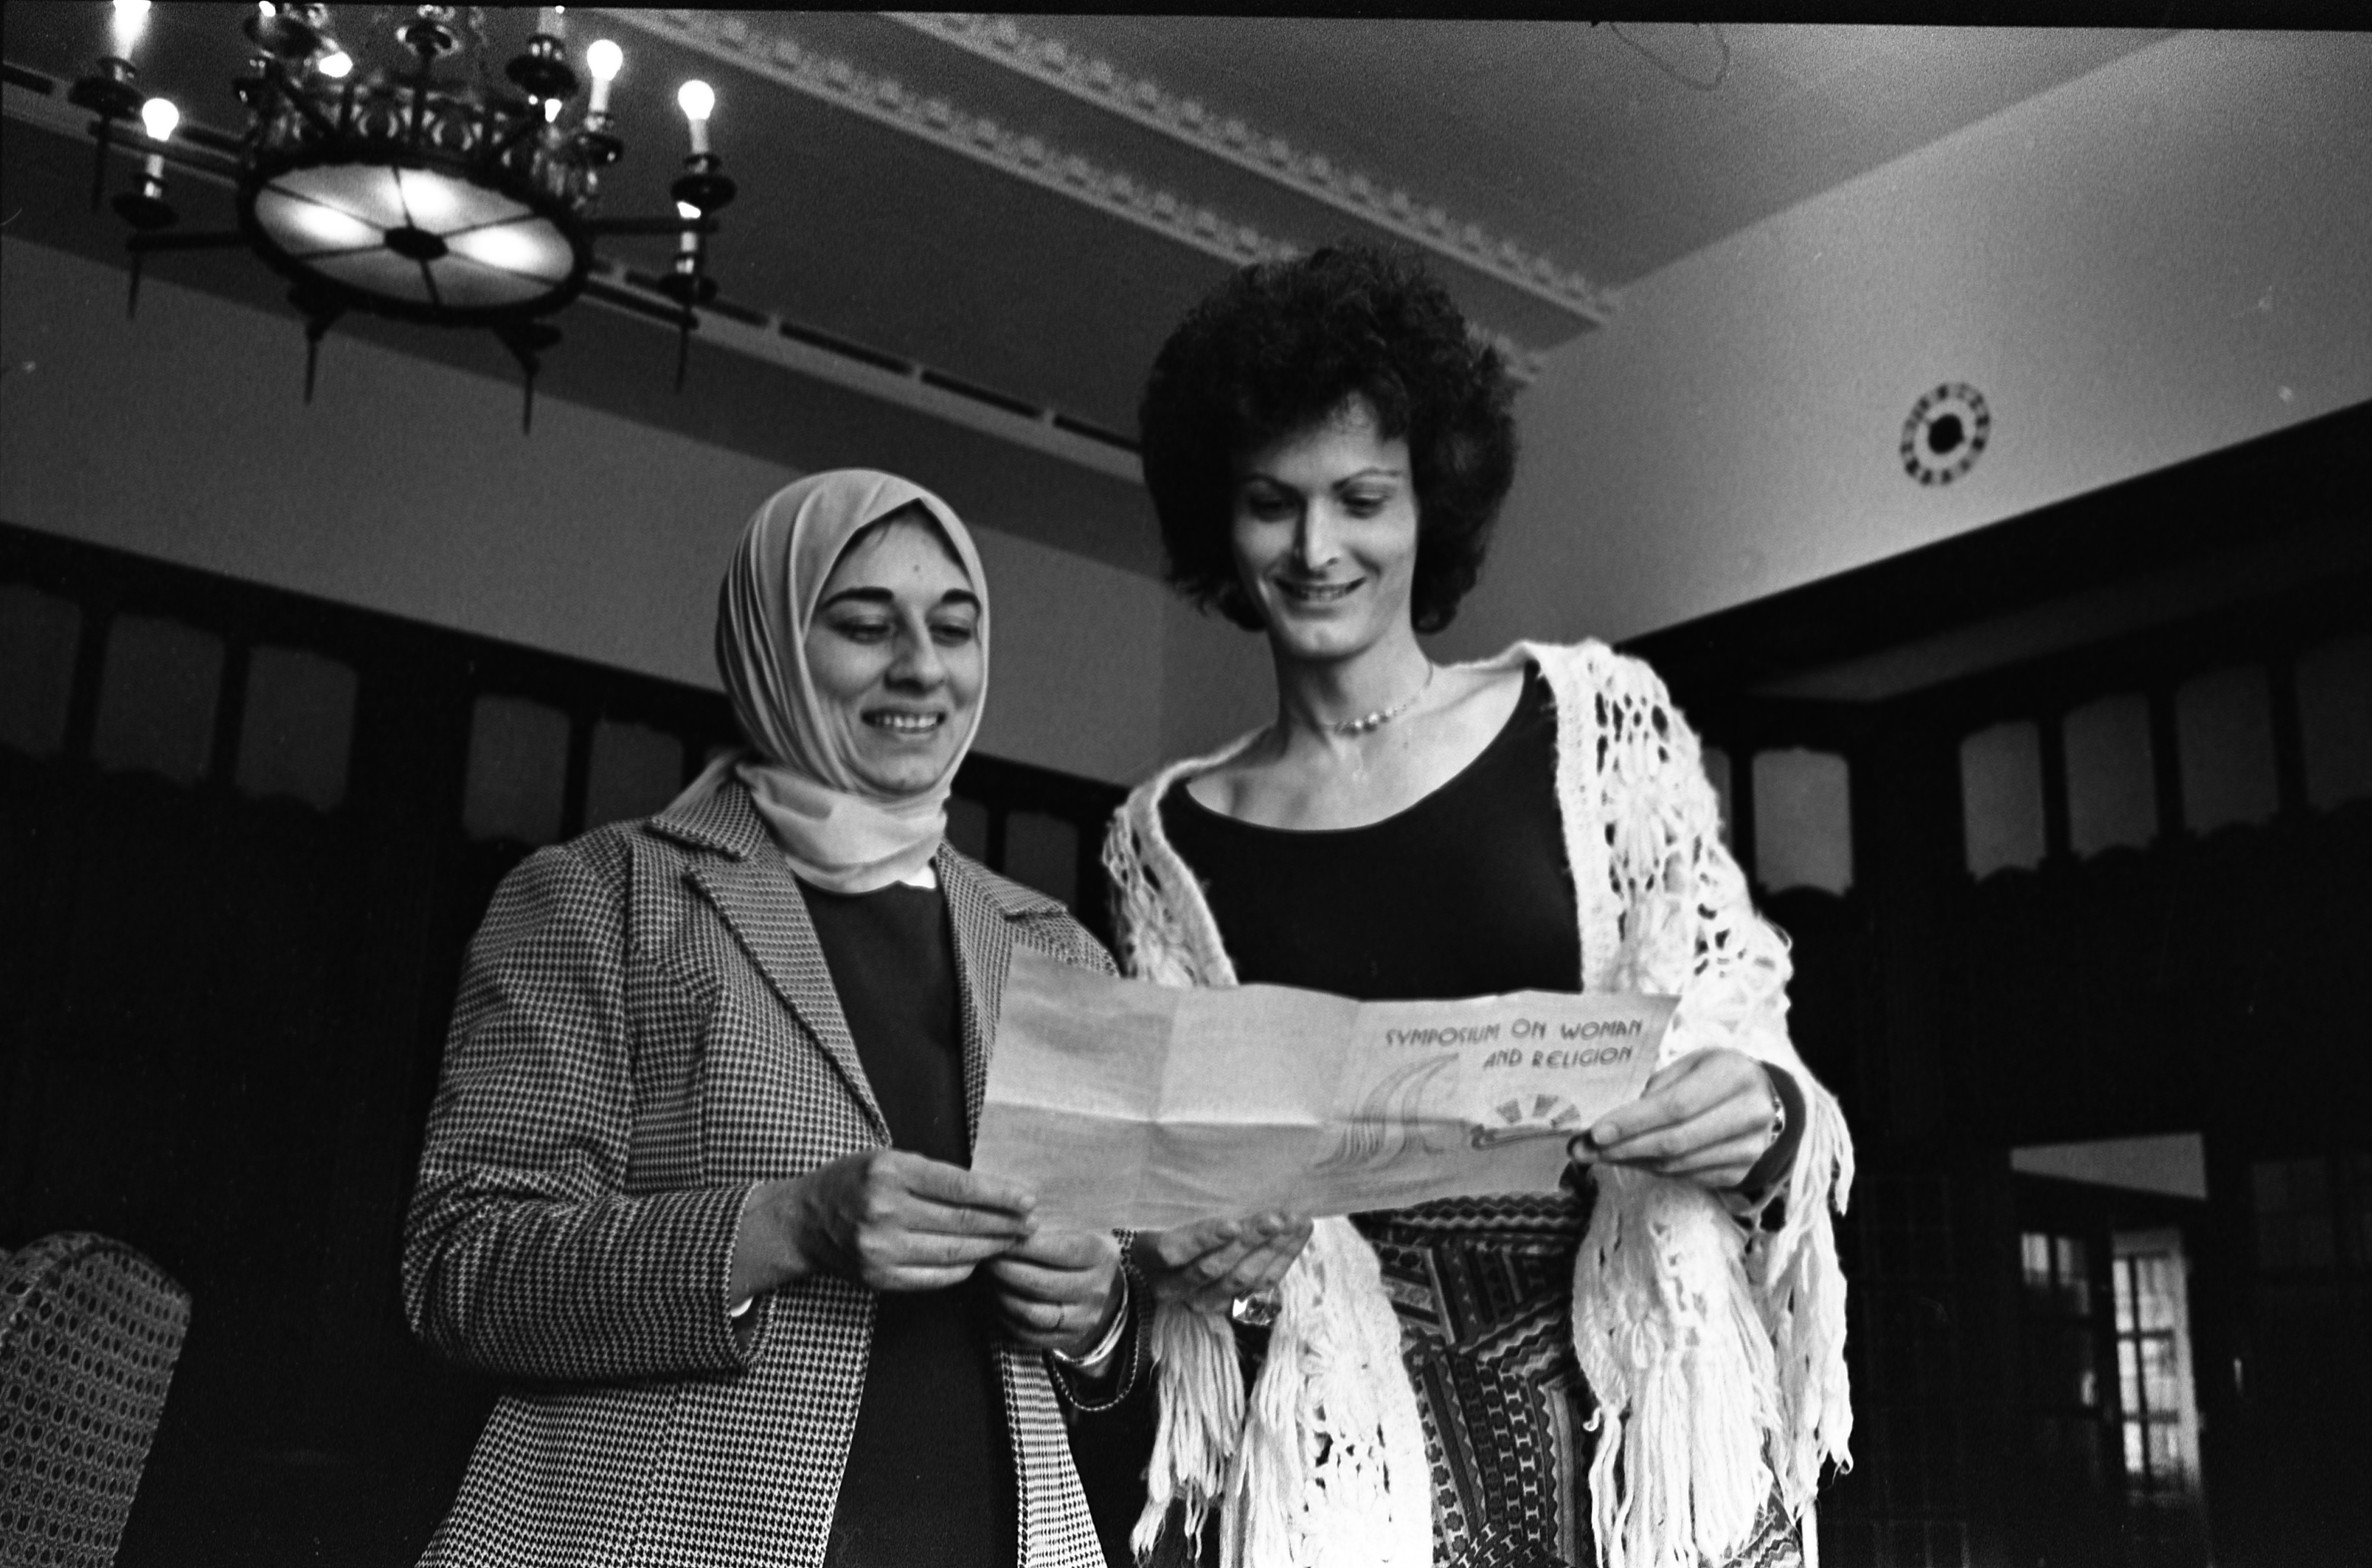 Participants Of The Jewish/Arabic Religious Conference Looking Over Program Guide, March 1975 image